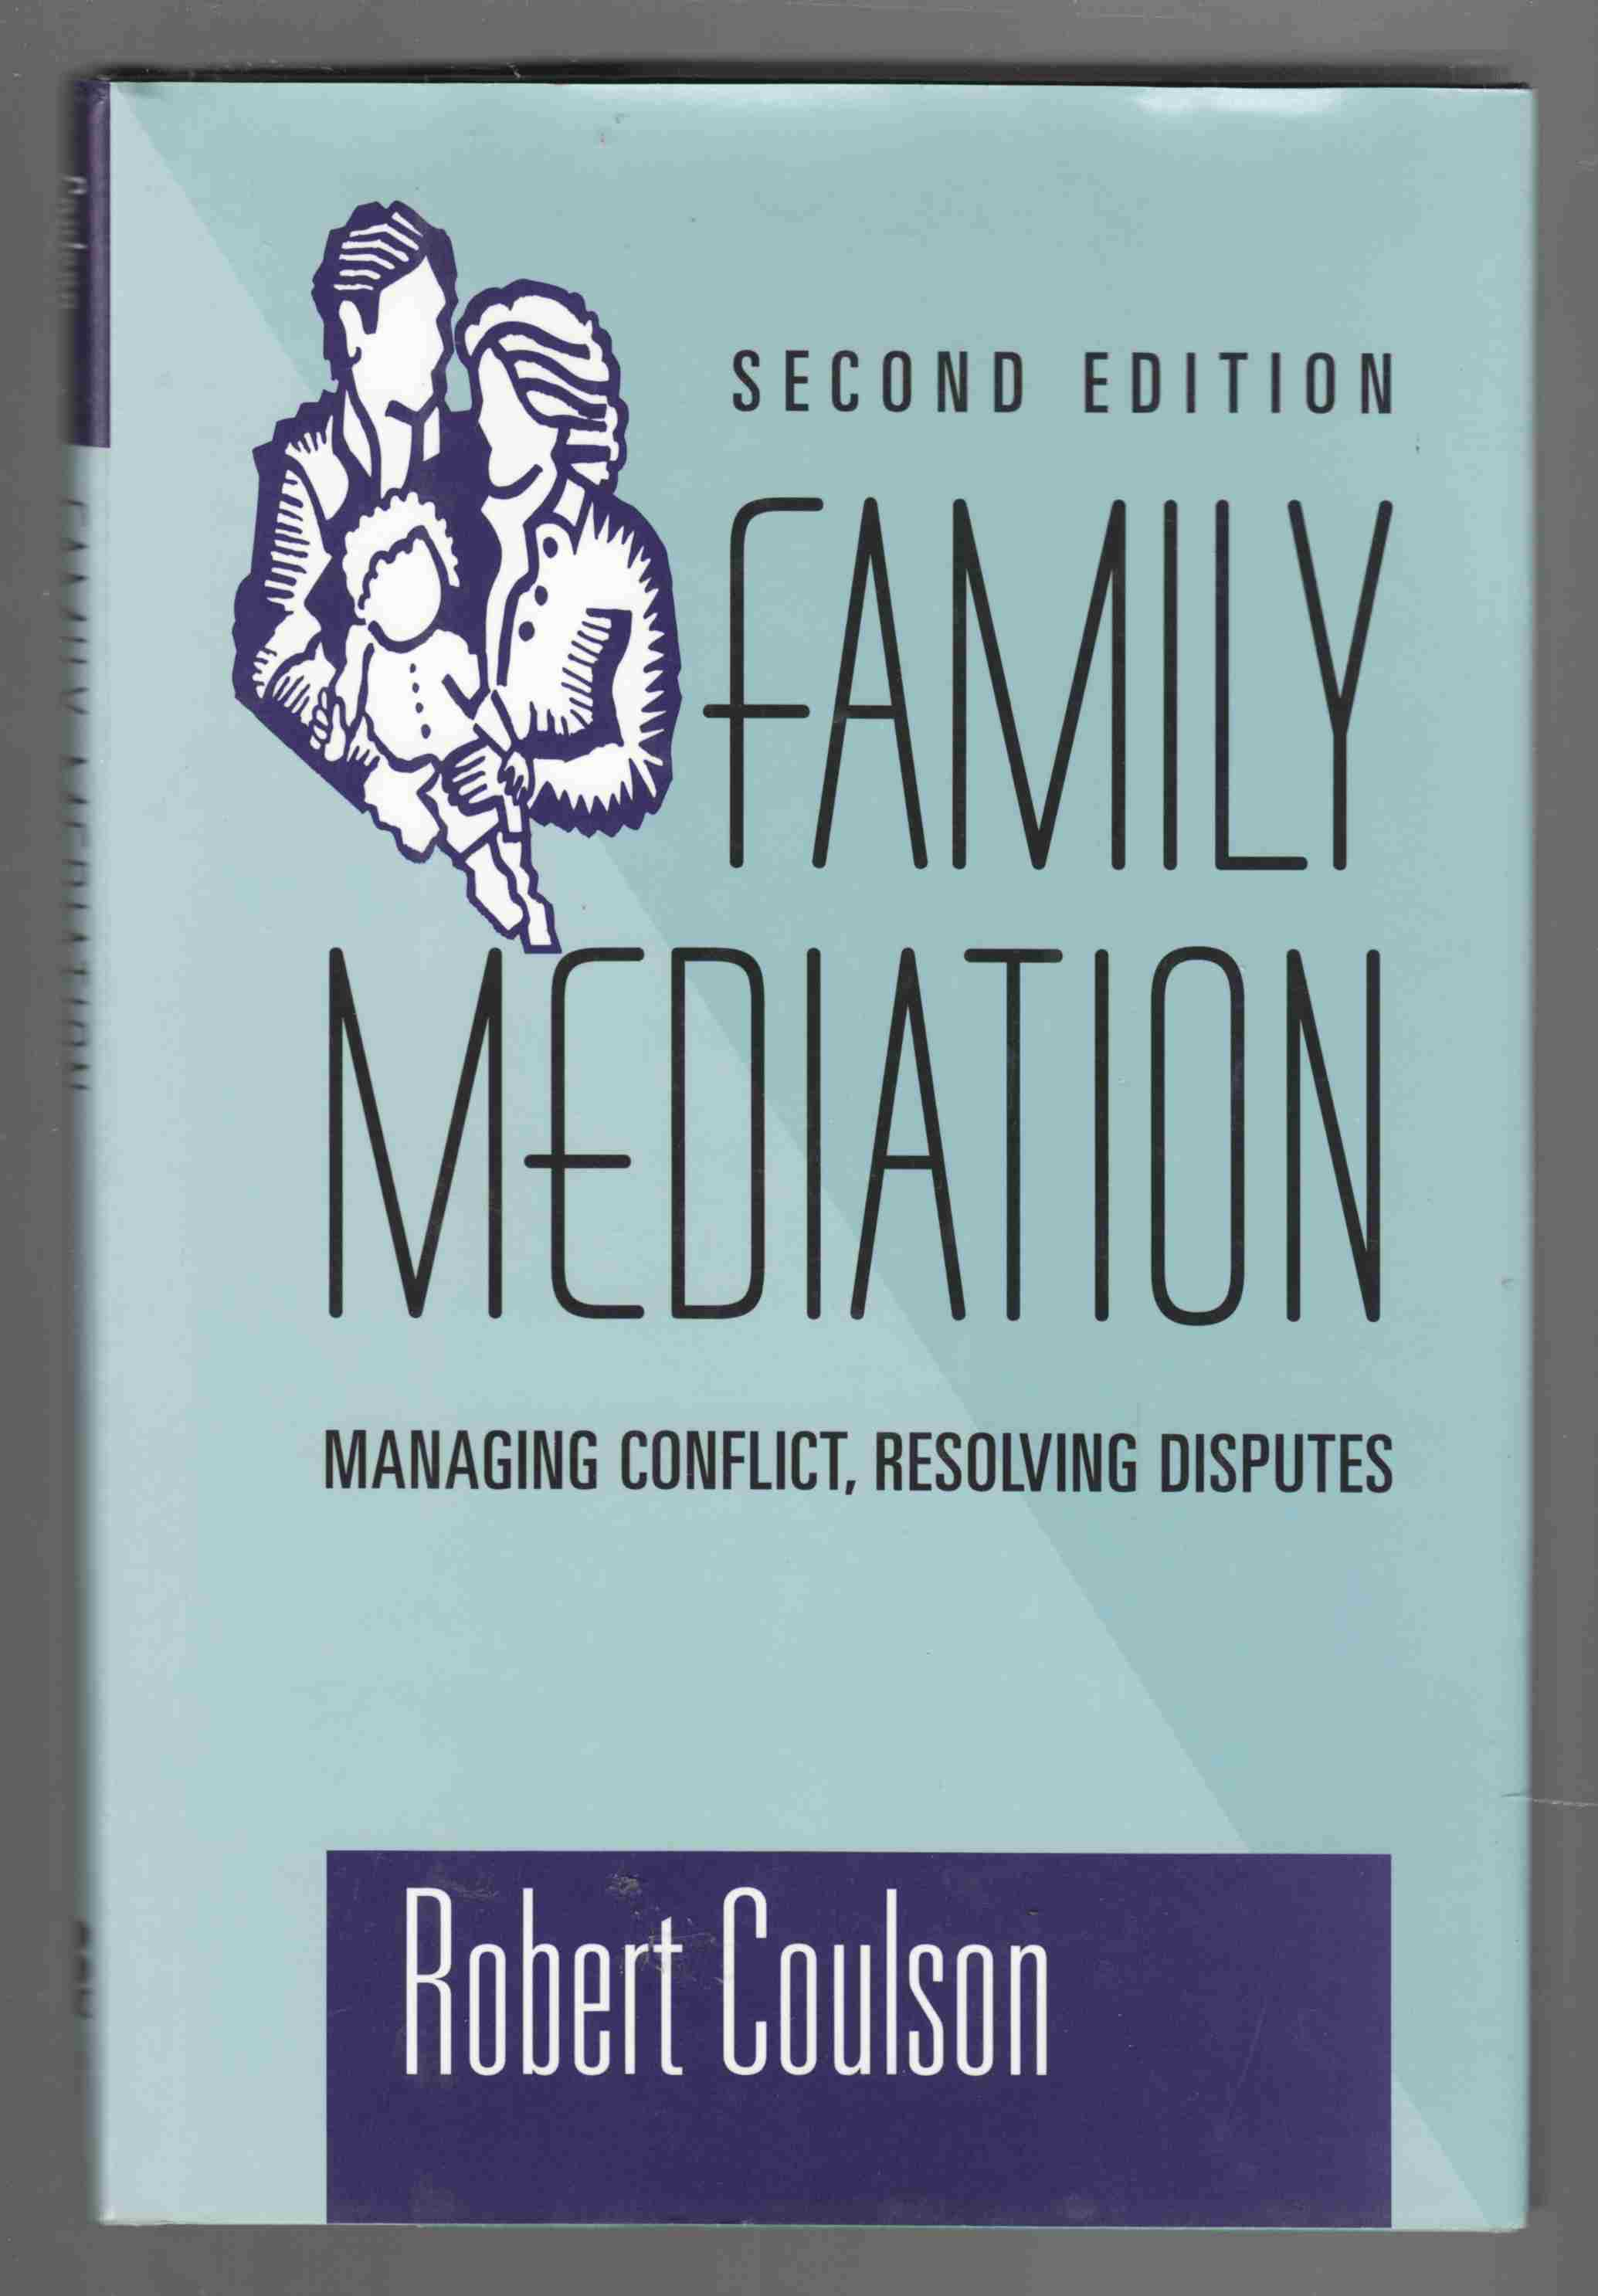 Image for Family Mediation: Managing Conflict, Resolving Disputes Second Edition